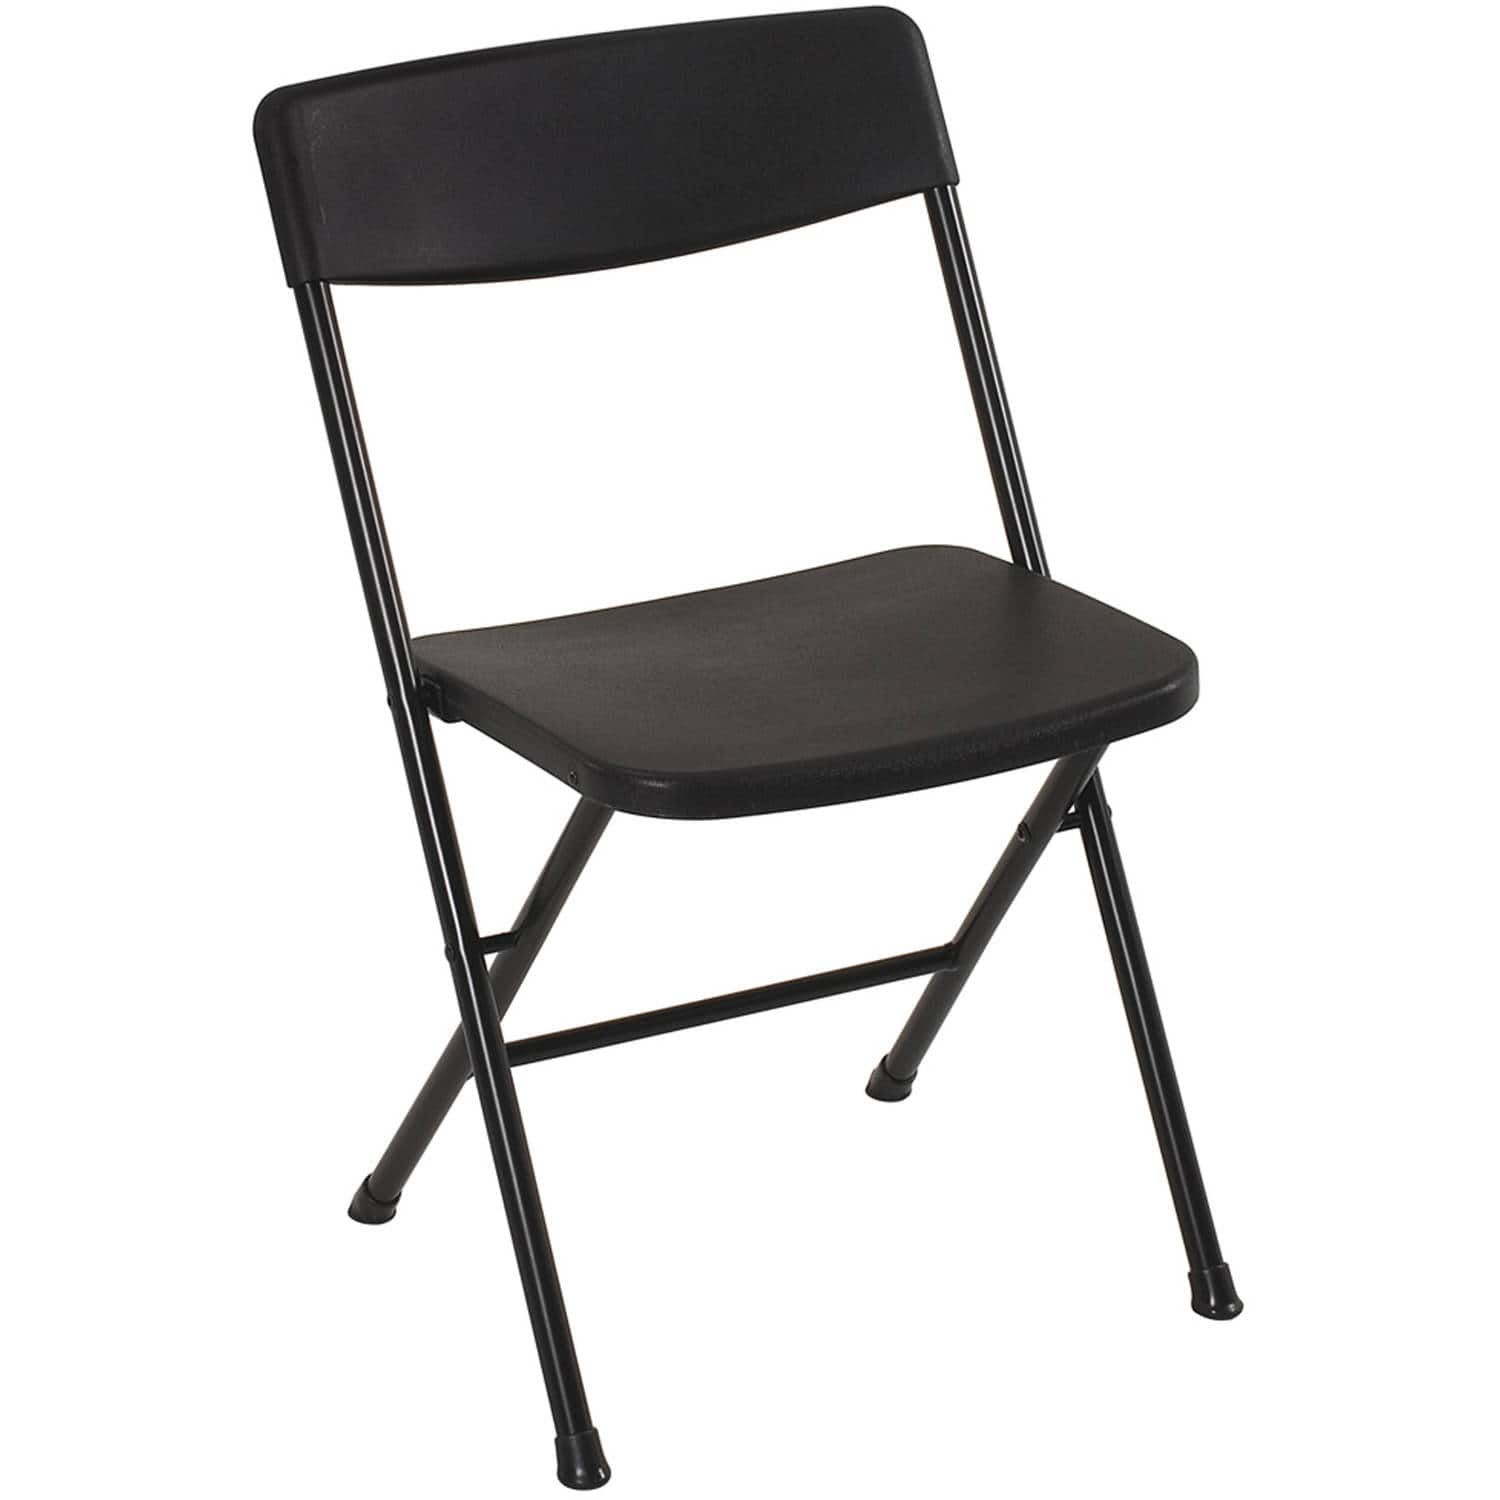 Magnificent Mainstays Cosco Plastic Resin Folding Chair Black Theyellowbook Wood Chair Design Ideas Theyellowbookinfo